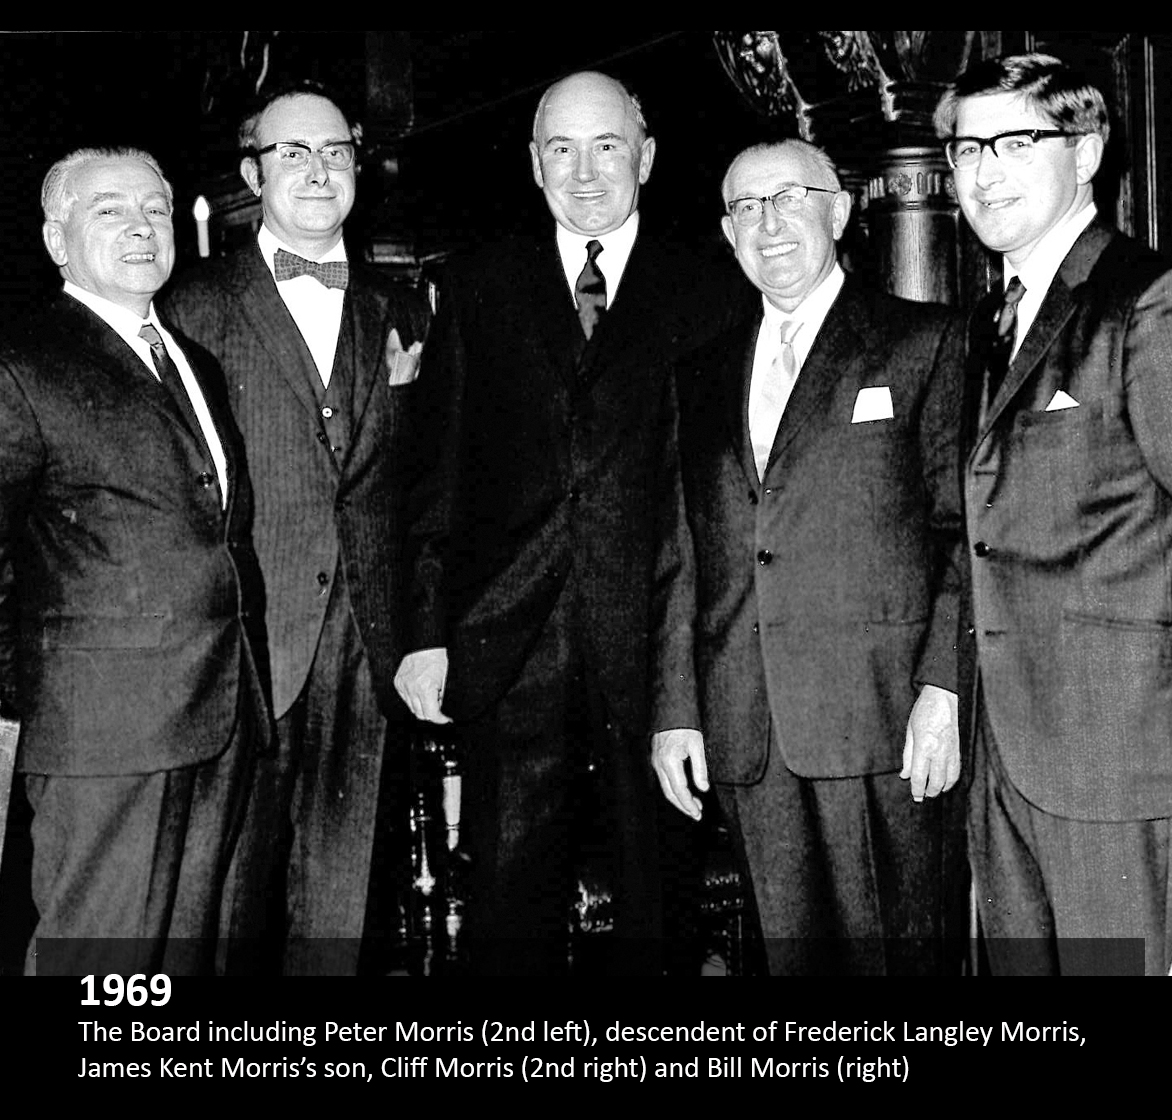 The Board including Peter Morris (2nd left), descendant of Frederick Langley Morris, James Kent Morris's son, Cliff Morris(2nd right) and Bill Morris (right)